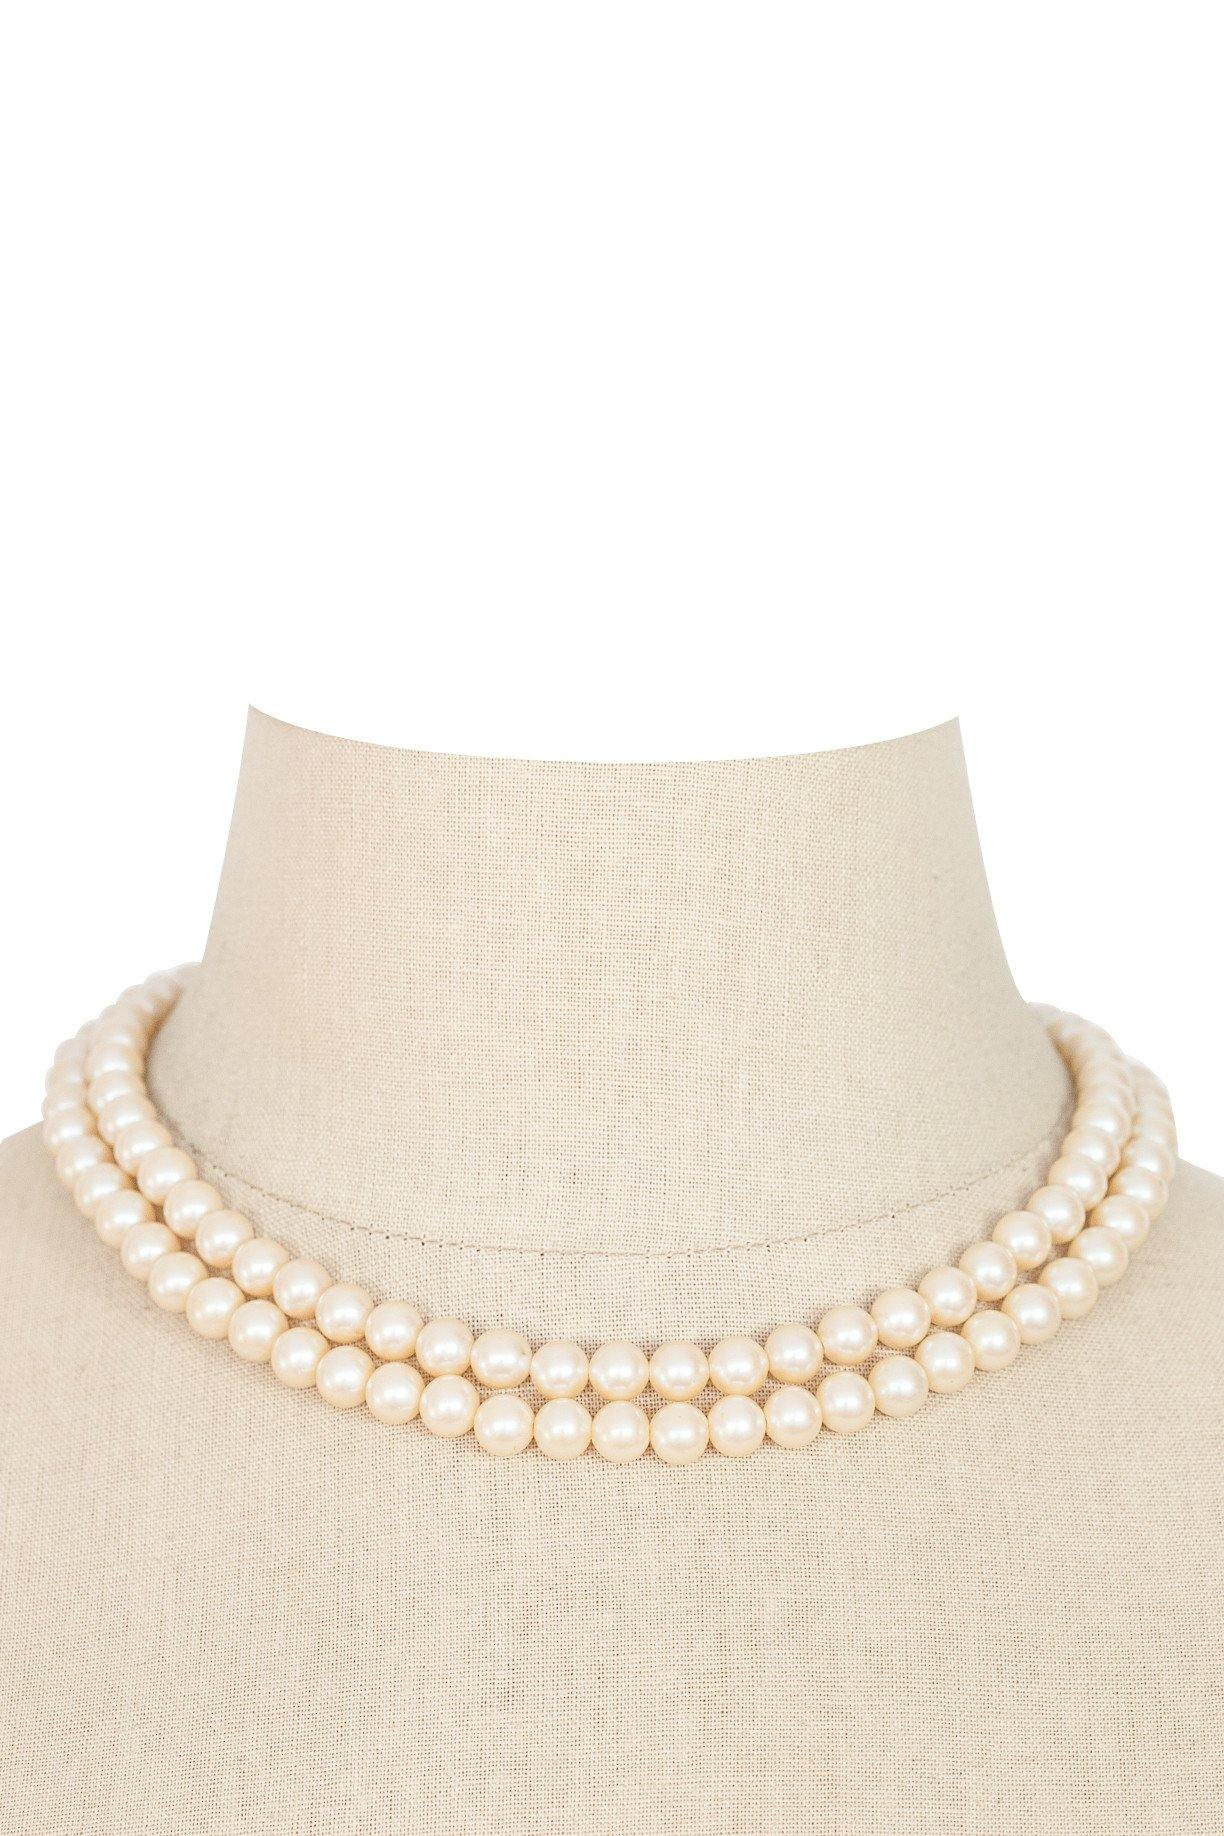 60's__Vintage__Layering Pearl Necklace